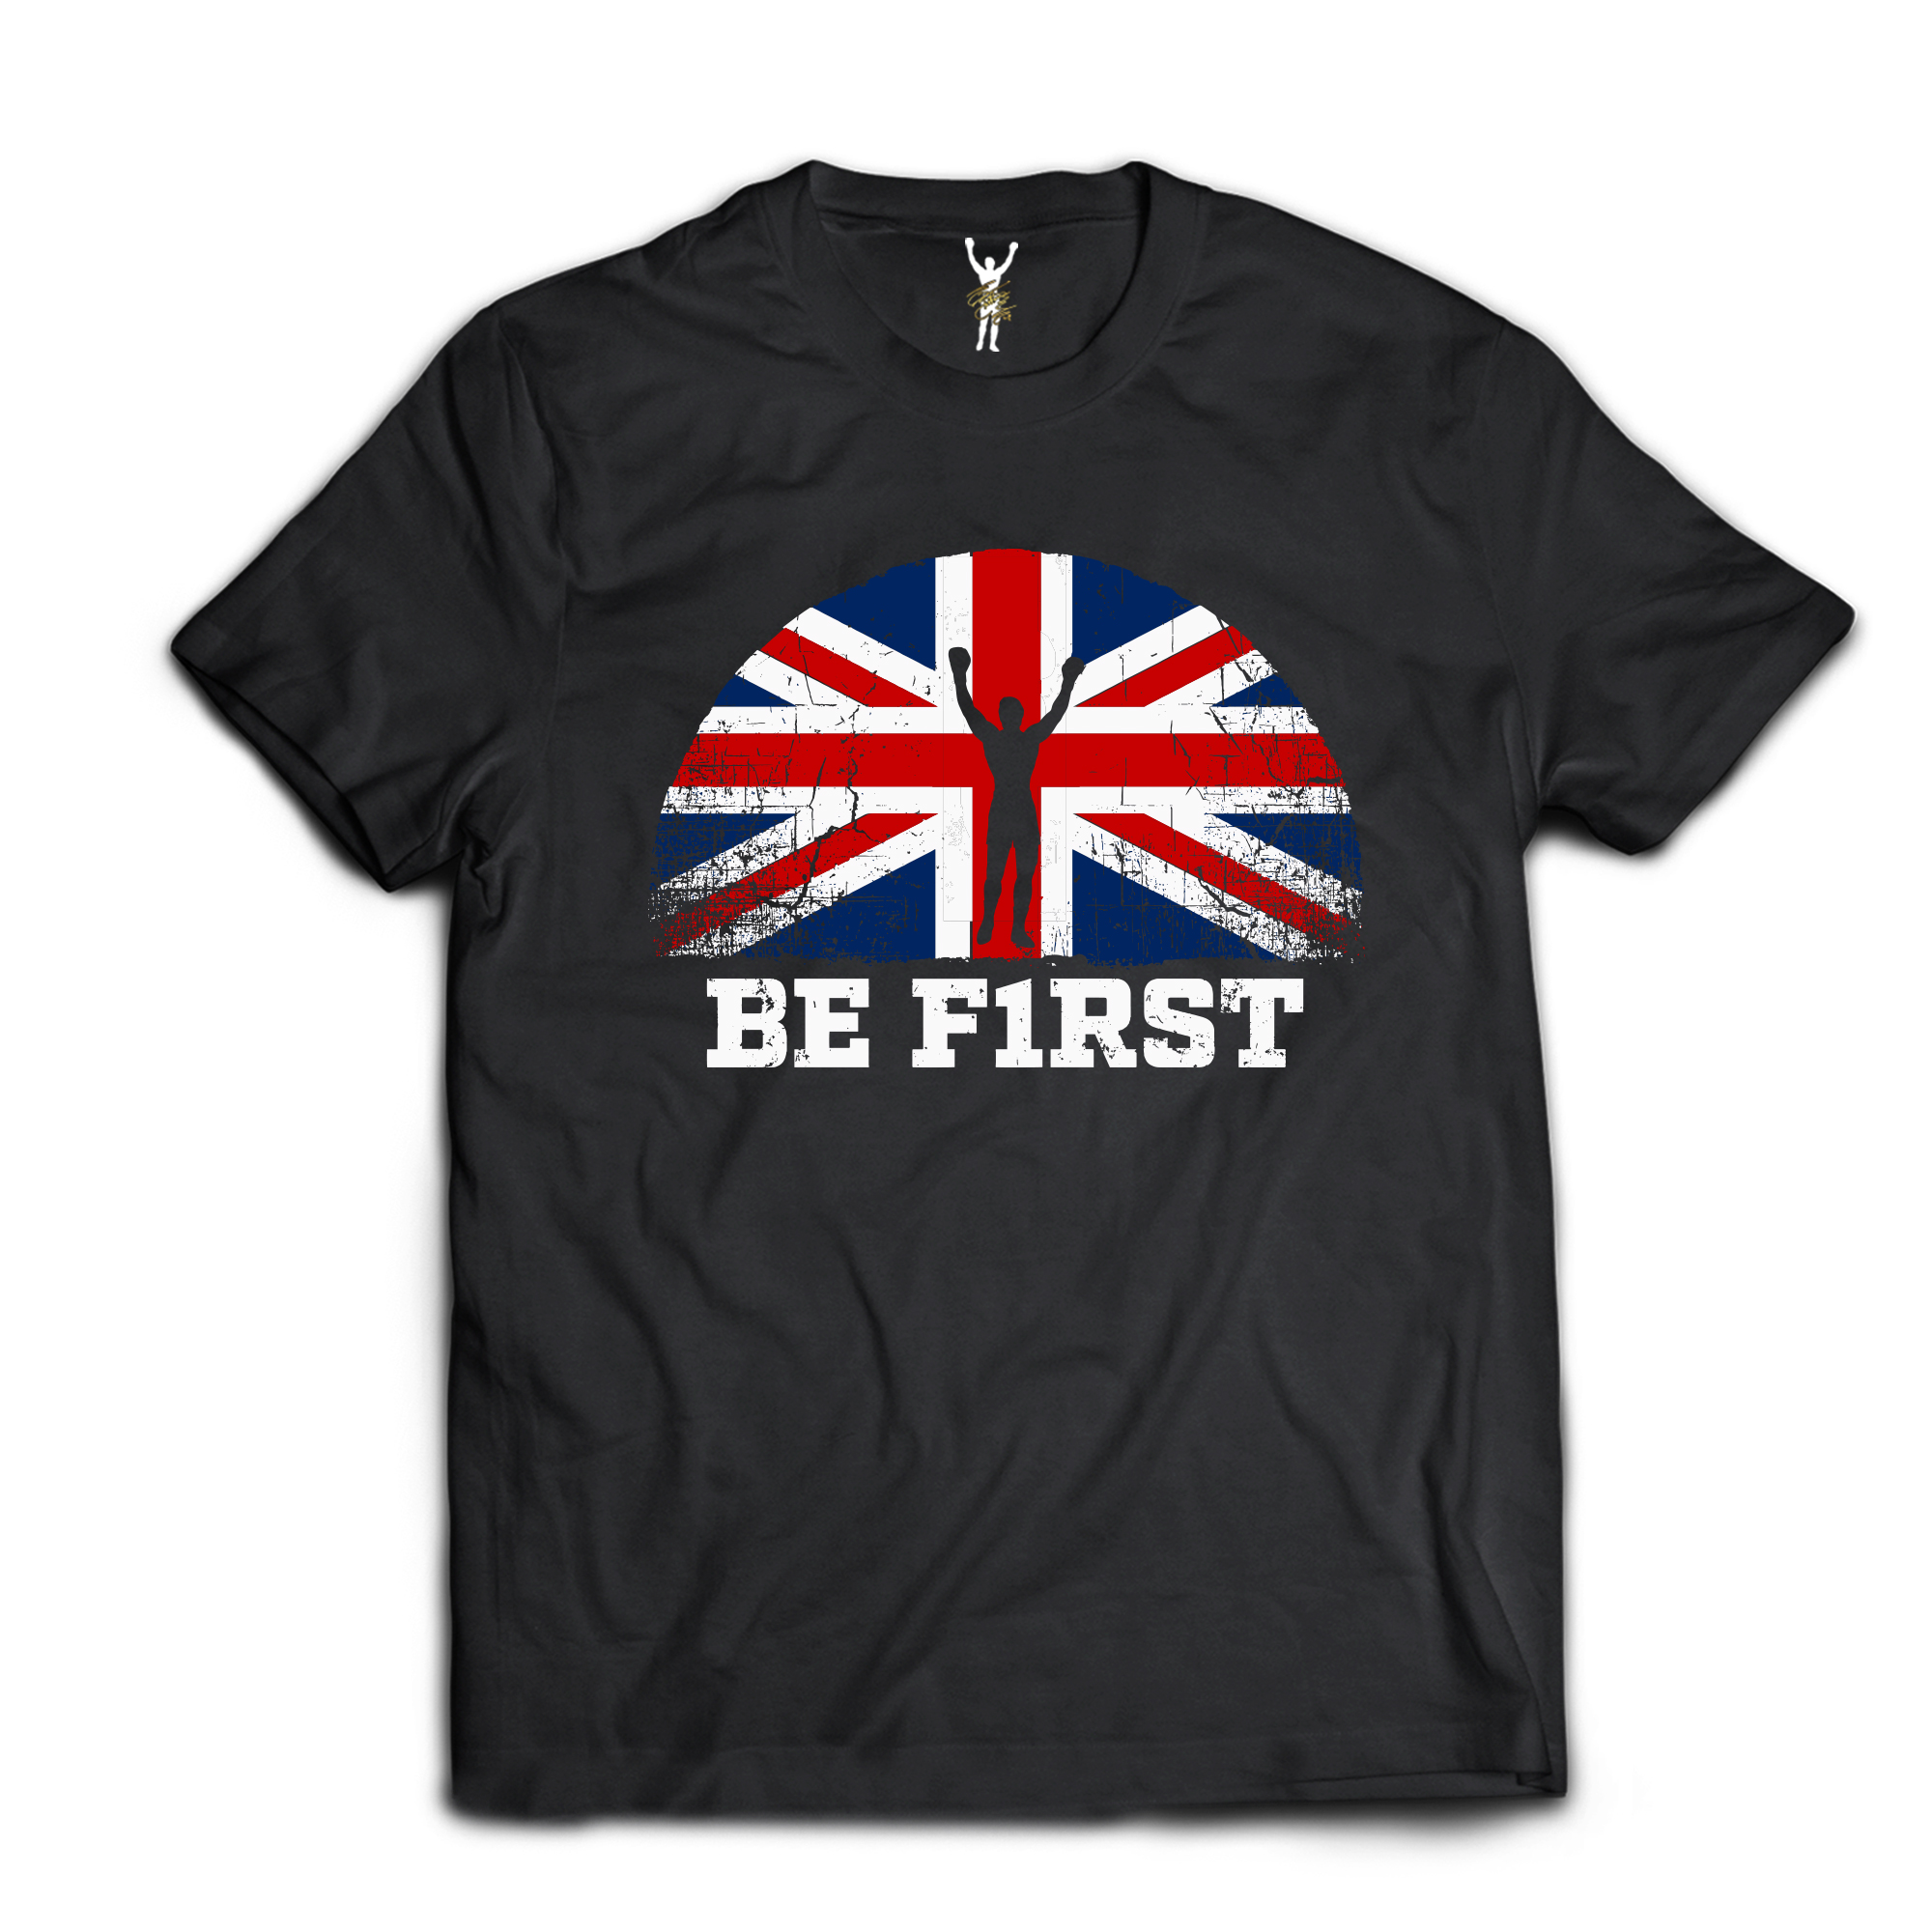 BE F1RST UK Tee